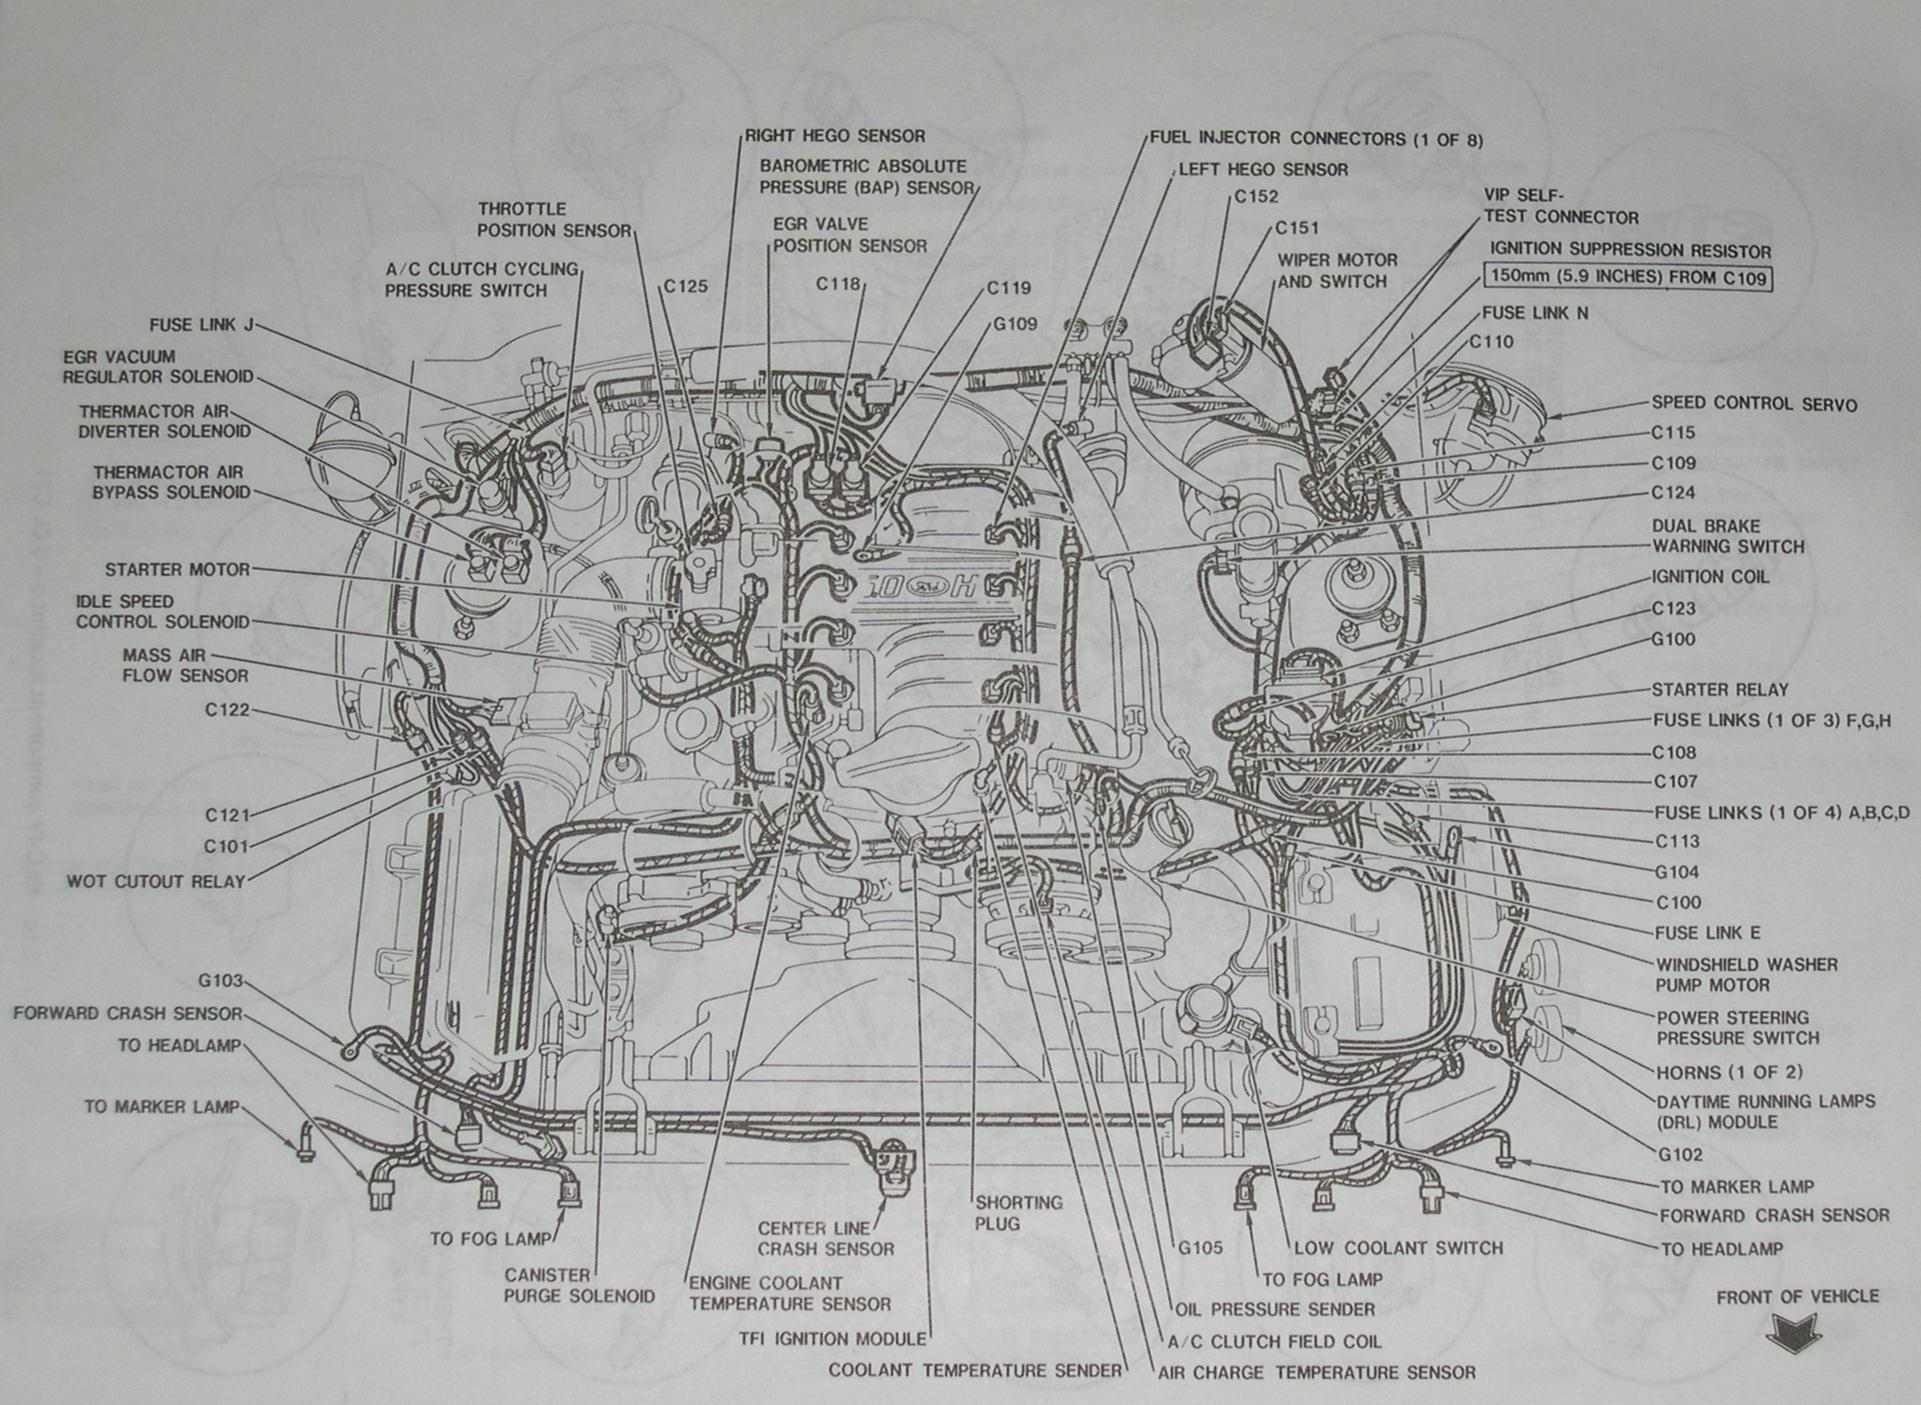 2001 Mustang Interior Wiring Harness Diagram Schematics Engine Drawing 1995 Gt Custom U2022 Rh Littlewaves Co 6 Pin